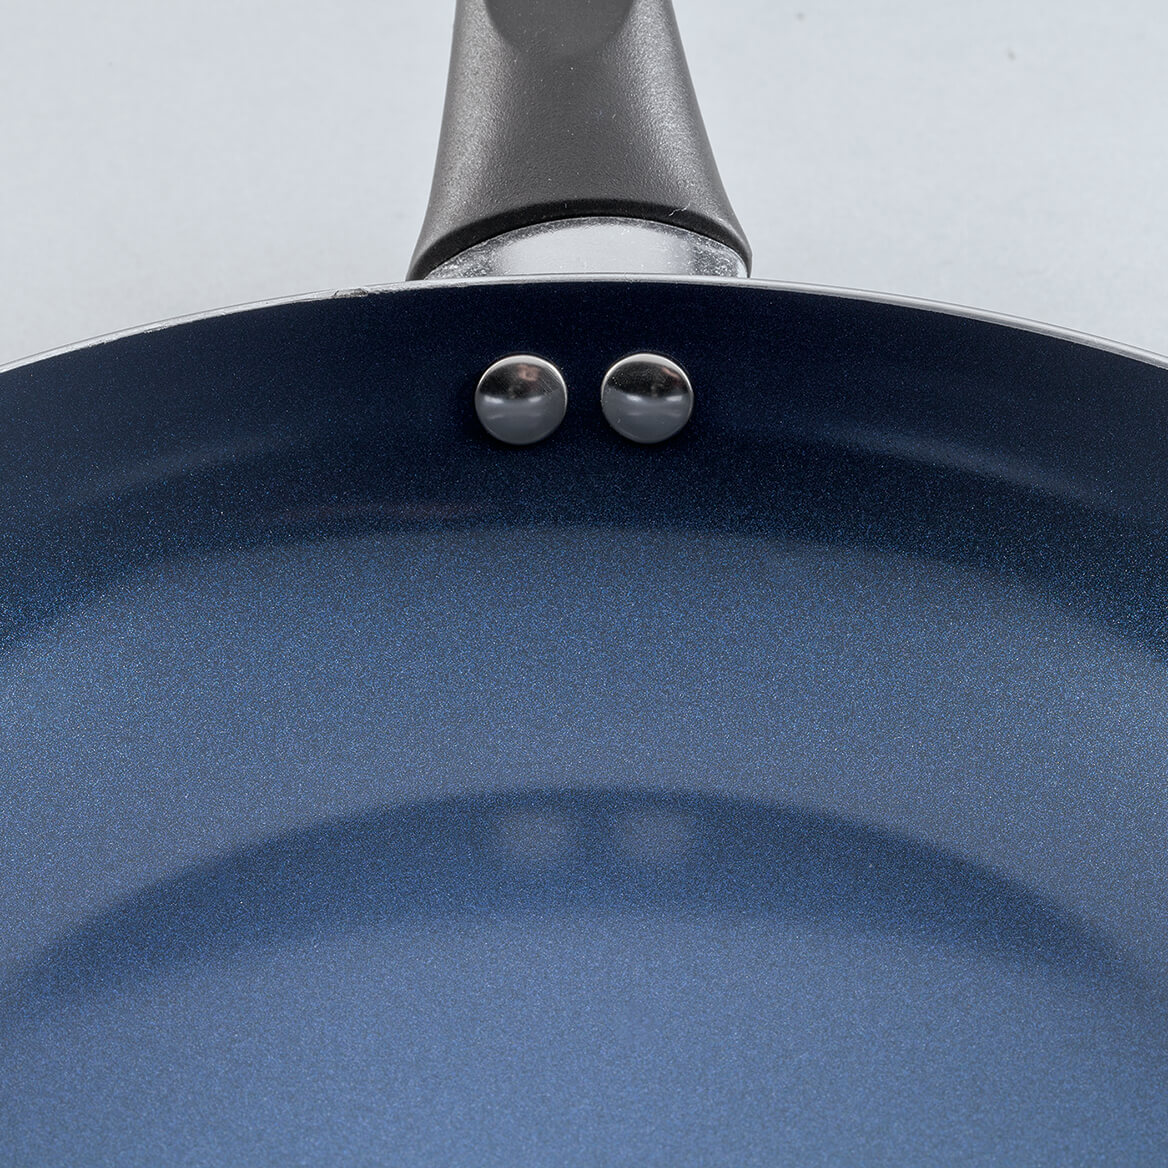 Sapphire Ceramic Fry Pan, Set of 2, by Home Marketplace-370369